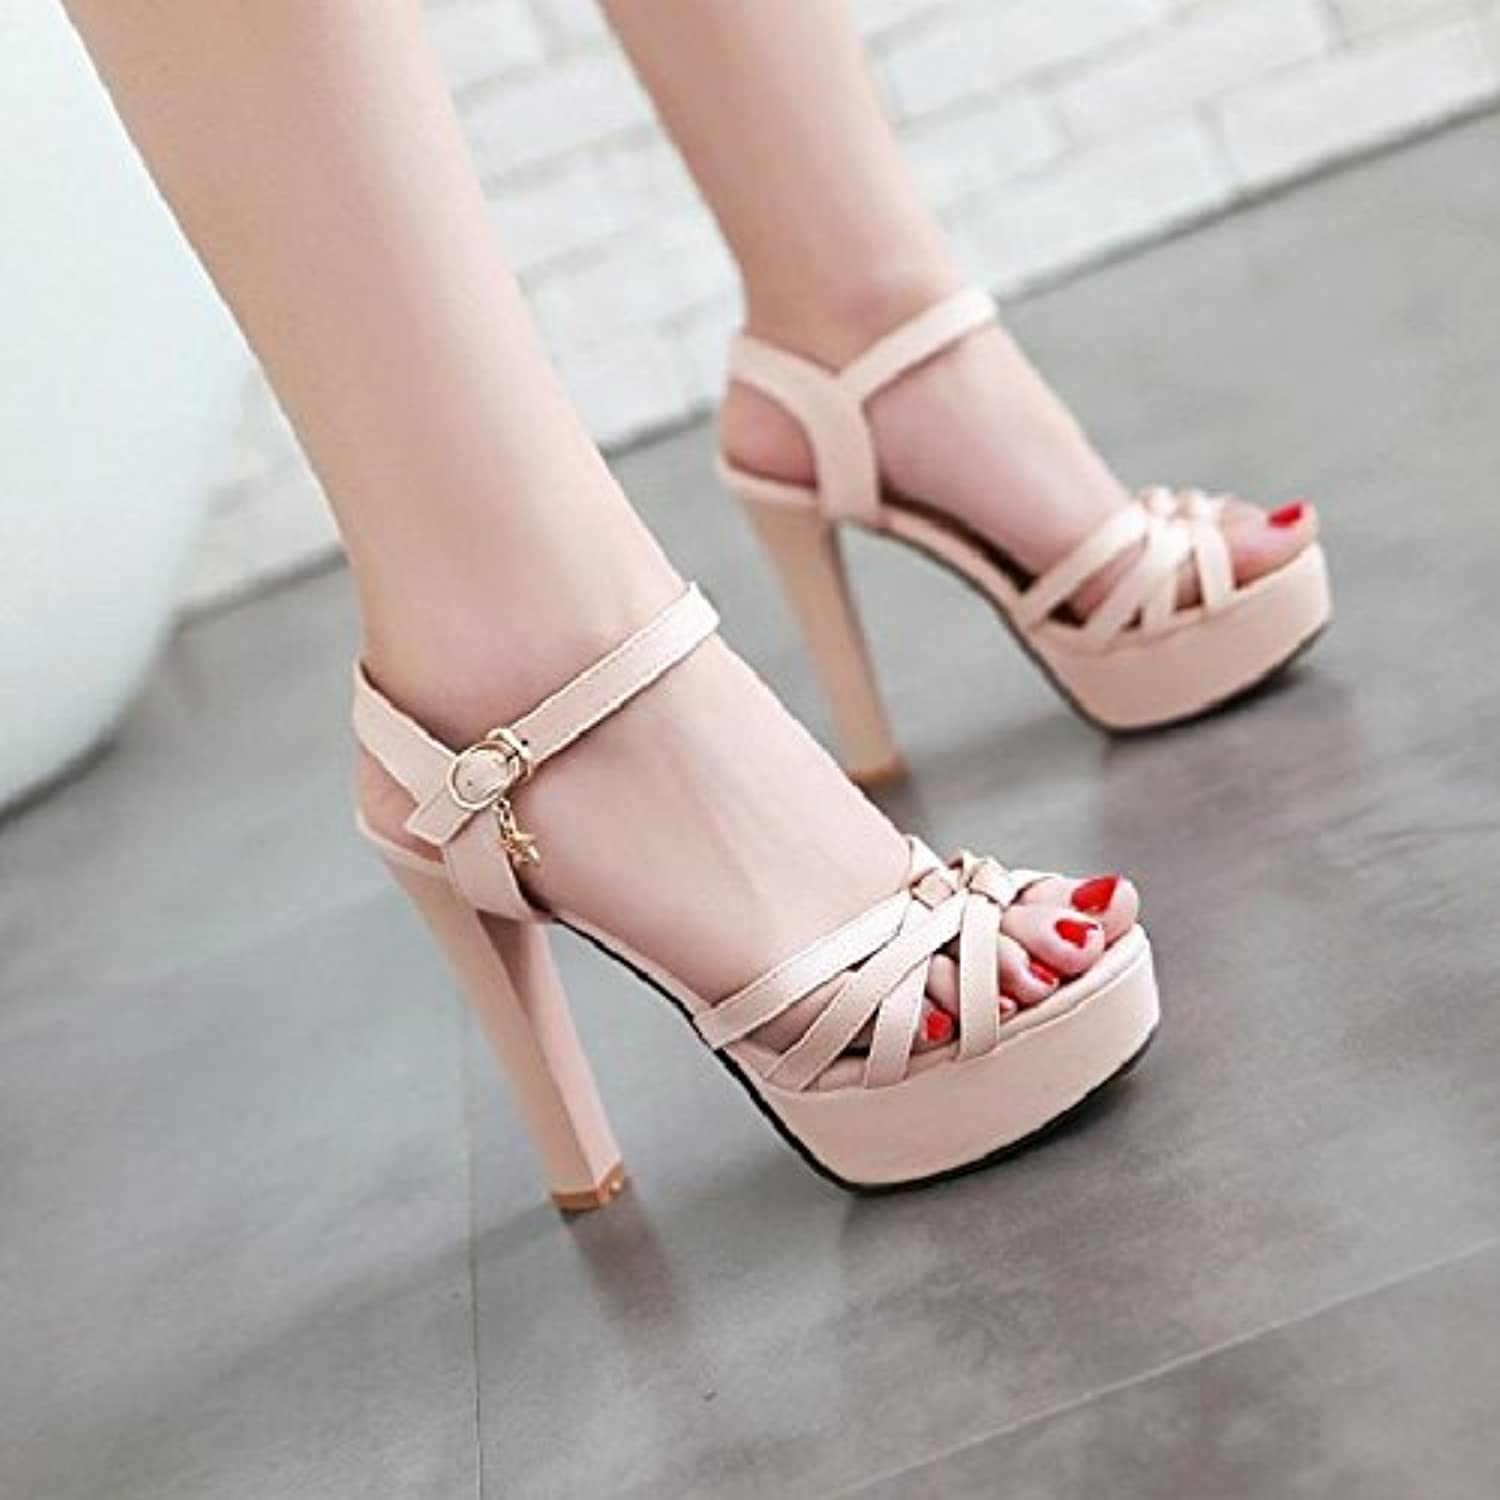 822e94cee0b1 YMFIE European Summer Fashion Sexy Toe High Heels SandalsLadies Party  Banquet Wedding High Heels B07DX4H6QN Parent f1ba42